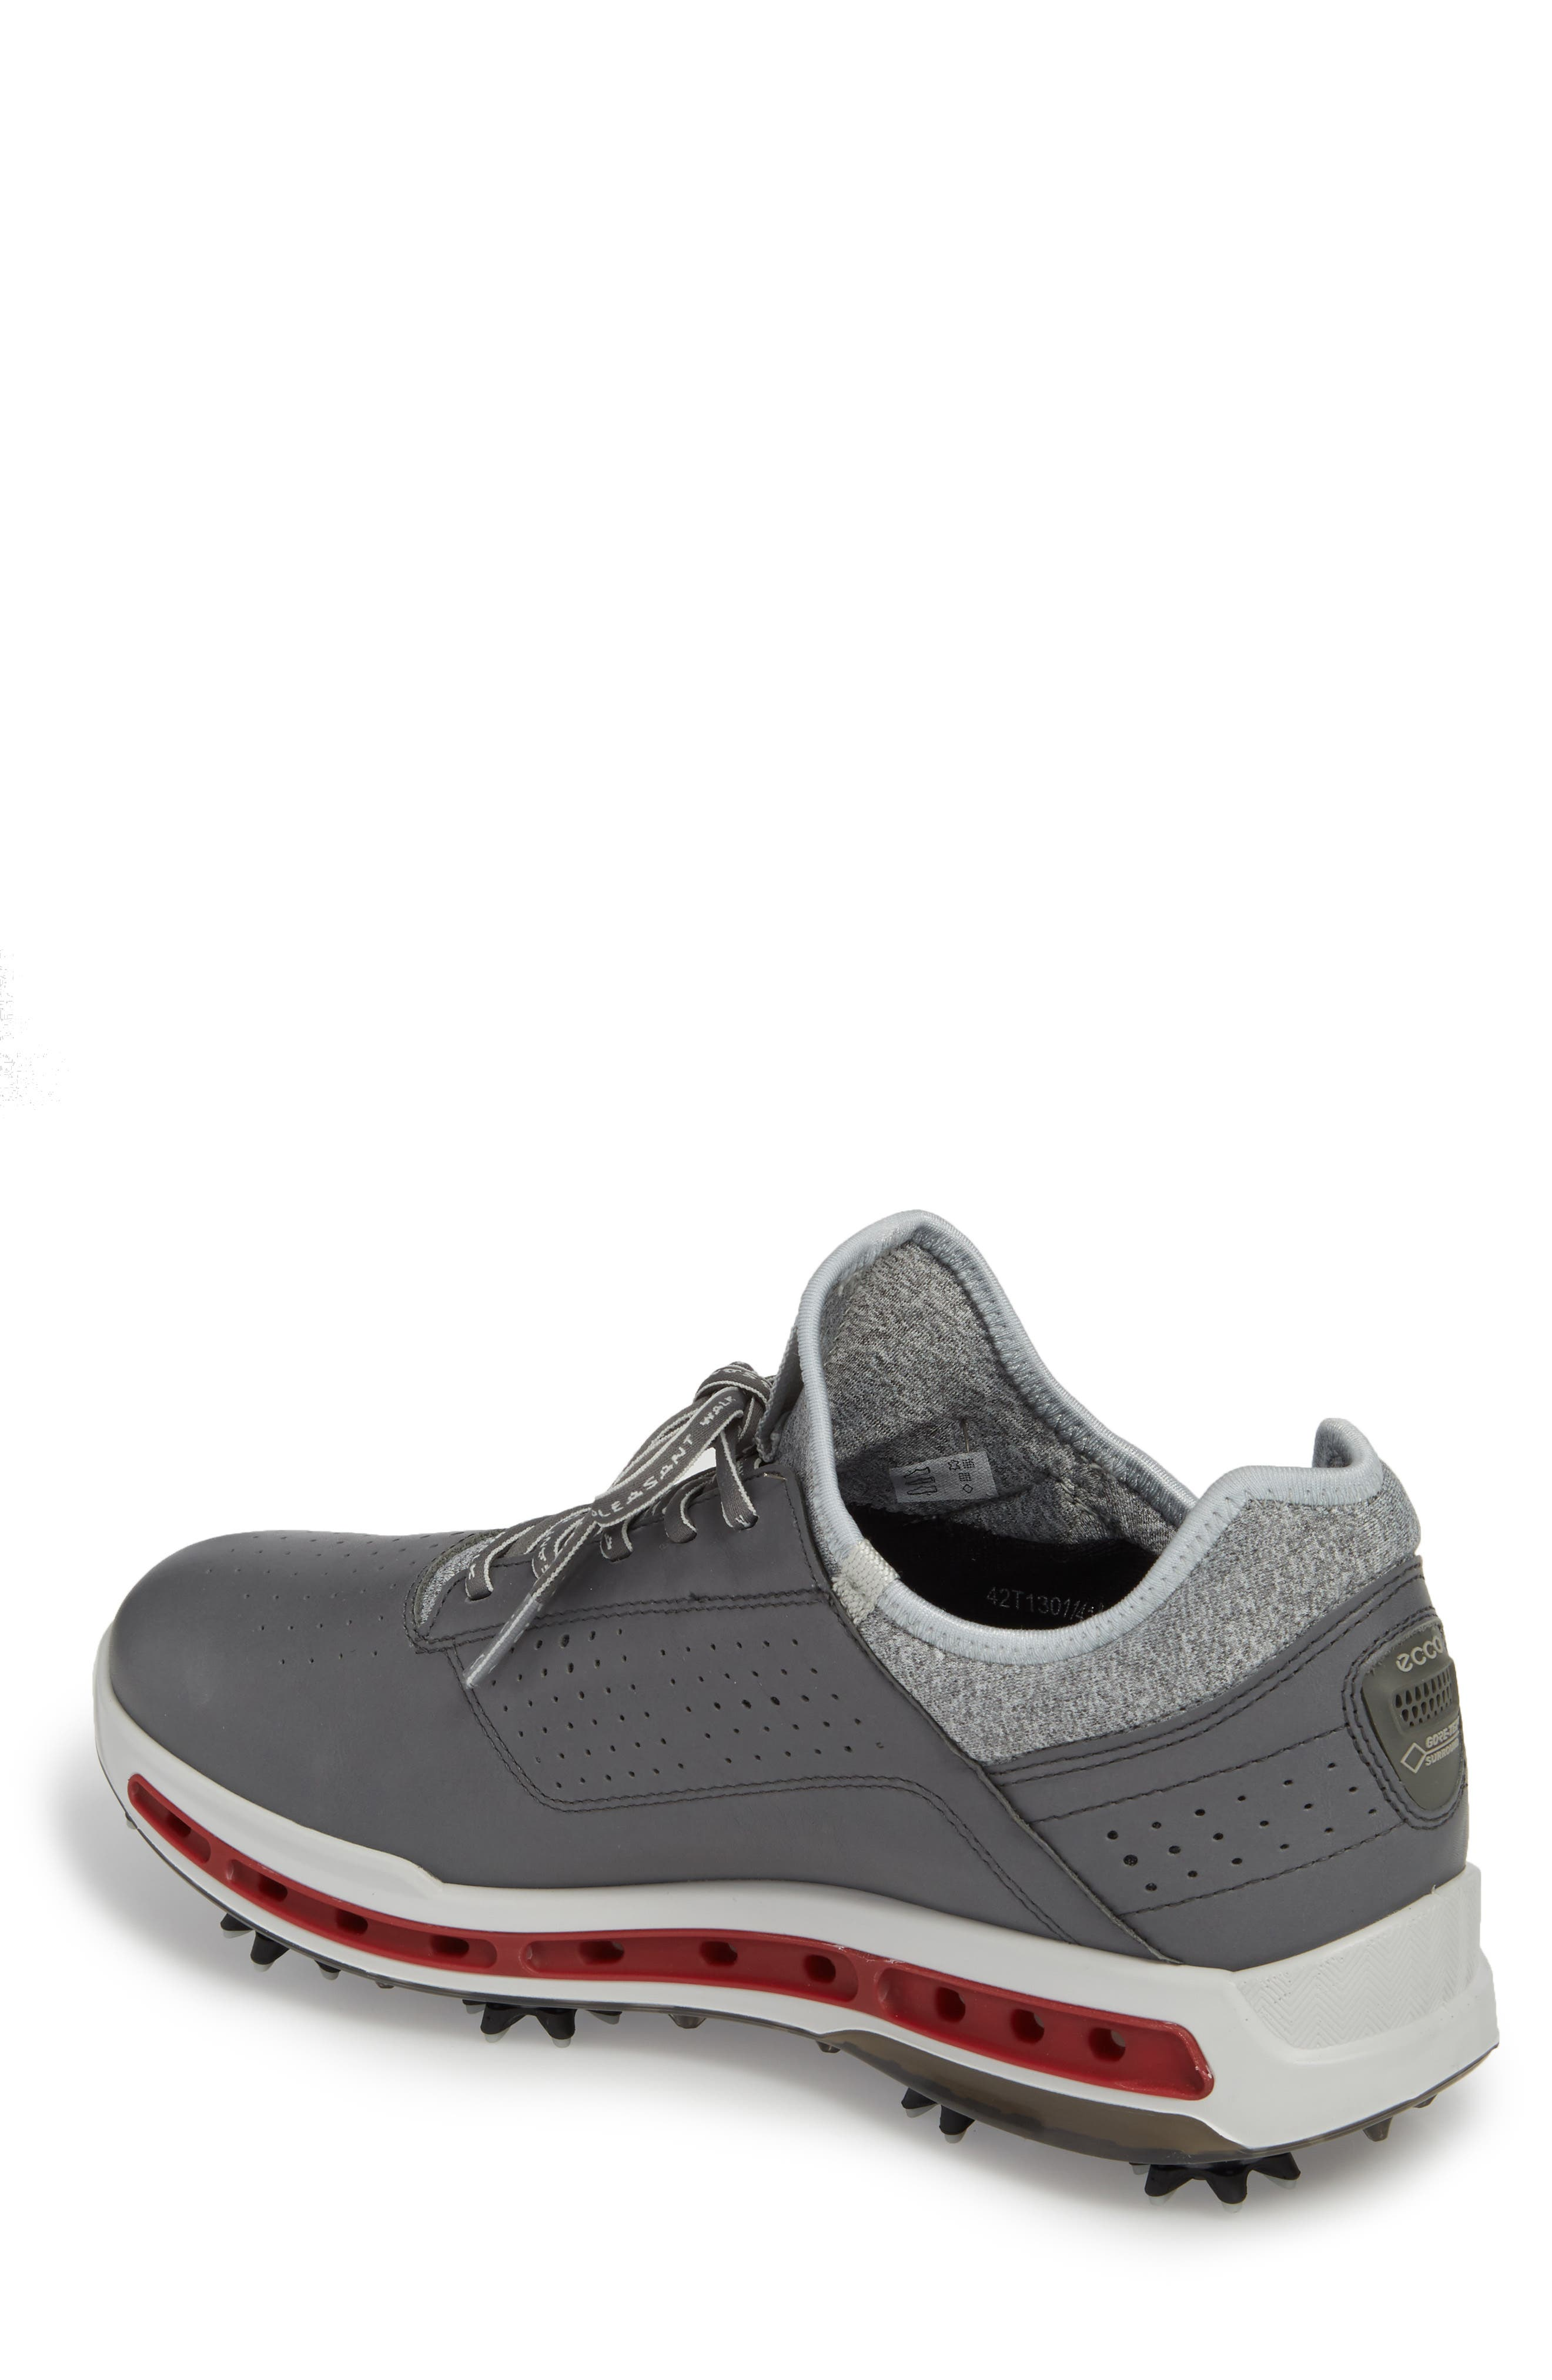 Cool 18 Gore-Tex Golf Shoe,                             Alternate thumbnail 2, color,                             Dark Shadow Leather